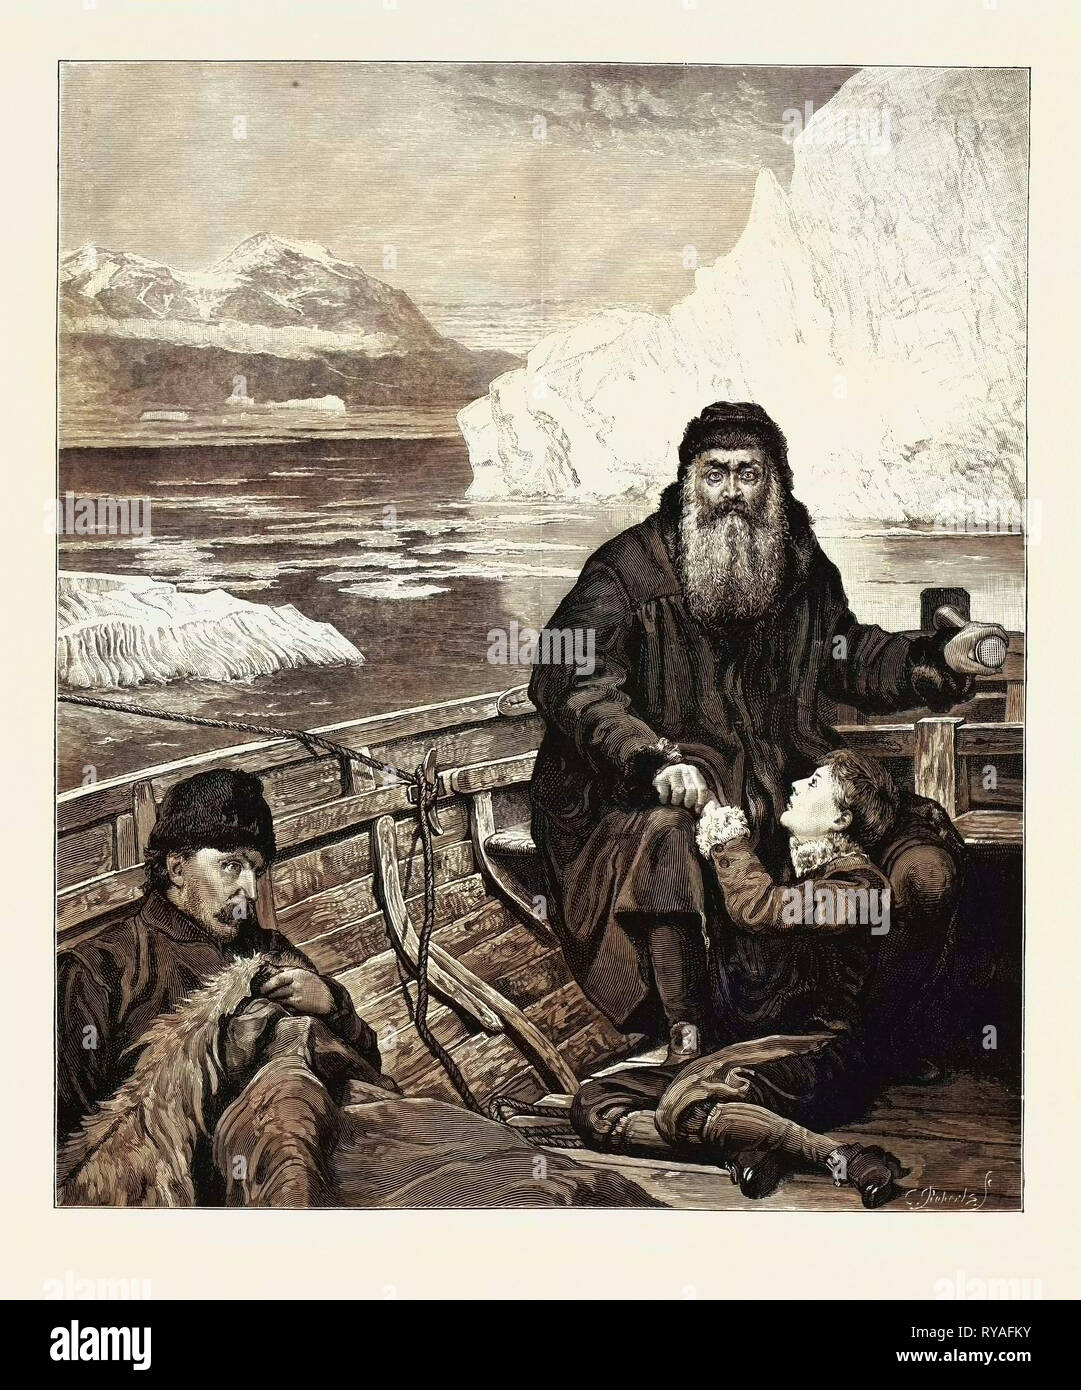 The Last Voyage of Henry Hudson from the Picture by John Collier, Henry Hudson, the Great Navigator, Made His Last Voyage to the Polar Seas in 1610. In the Summer of 1611 His Crew Mutinied and Set Him Adrift in an Open Boat with His Son, John Hudson, and Some of the Most Infirm of the Sailors. They Were Never Heard of More - Stock Image